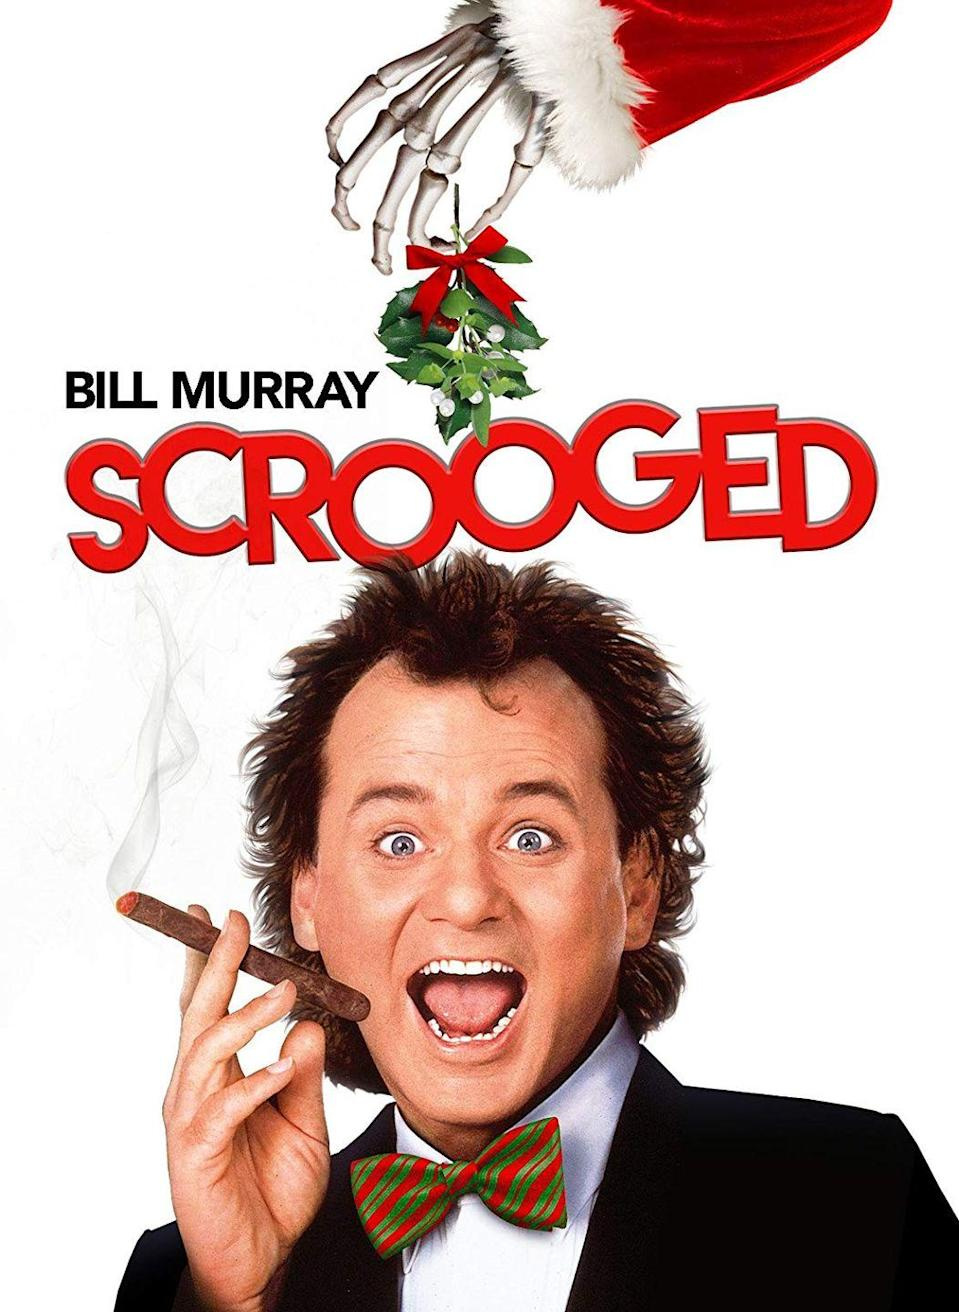 """<p>This modernized version of <em>A Christmas Carol</em> stars Bill Murray as a curmudgeonly TV executive who learns the true meaning of Christmas.</p><p><a class=""""link rapid-noclick-resp"""" href=""""https://www.amazon.com/Scrooged-Bill-Murray/dp/B0032GWF2A/?tag=syn-yahoo-20&ascsubtag=%5Bartid%7C10055.g.1315%5Bsrc%7Cyahoo-us"""" rel=""""nofollow noopener"""" target=""""_blank"""" data-ylk=""""slk:WATCH NOW"""">WATCH NOW</a></p>"""